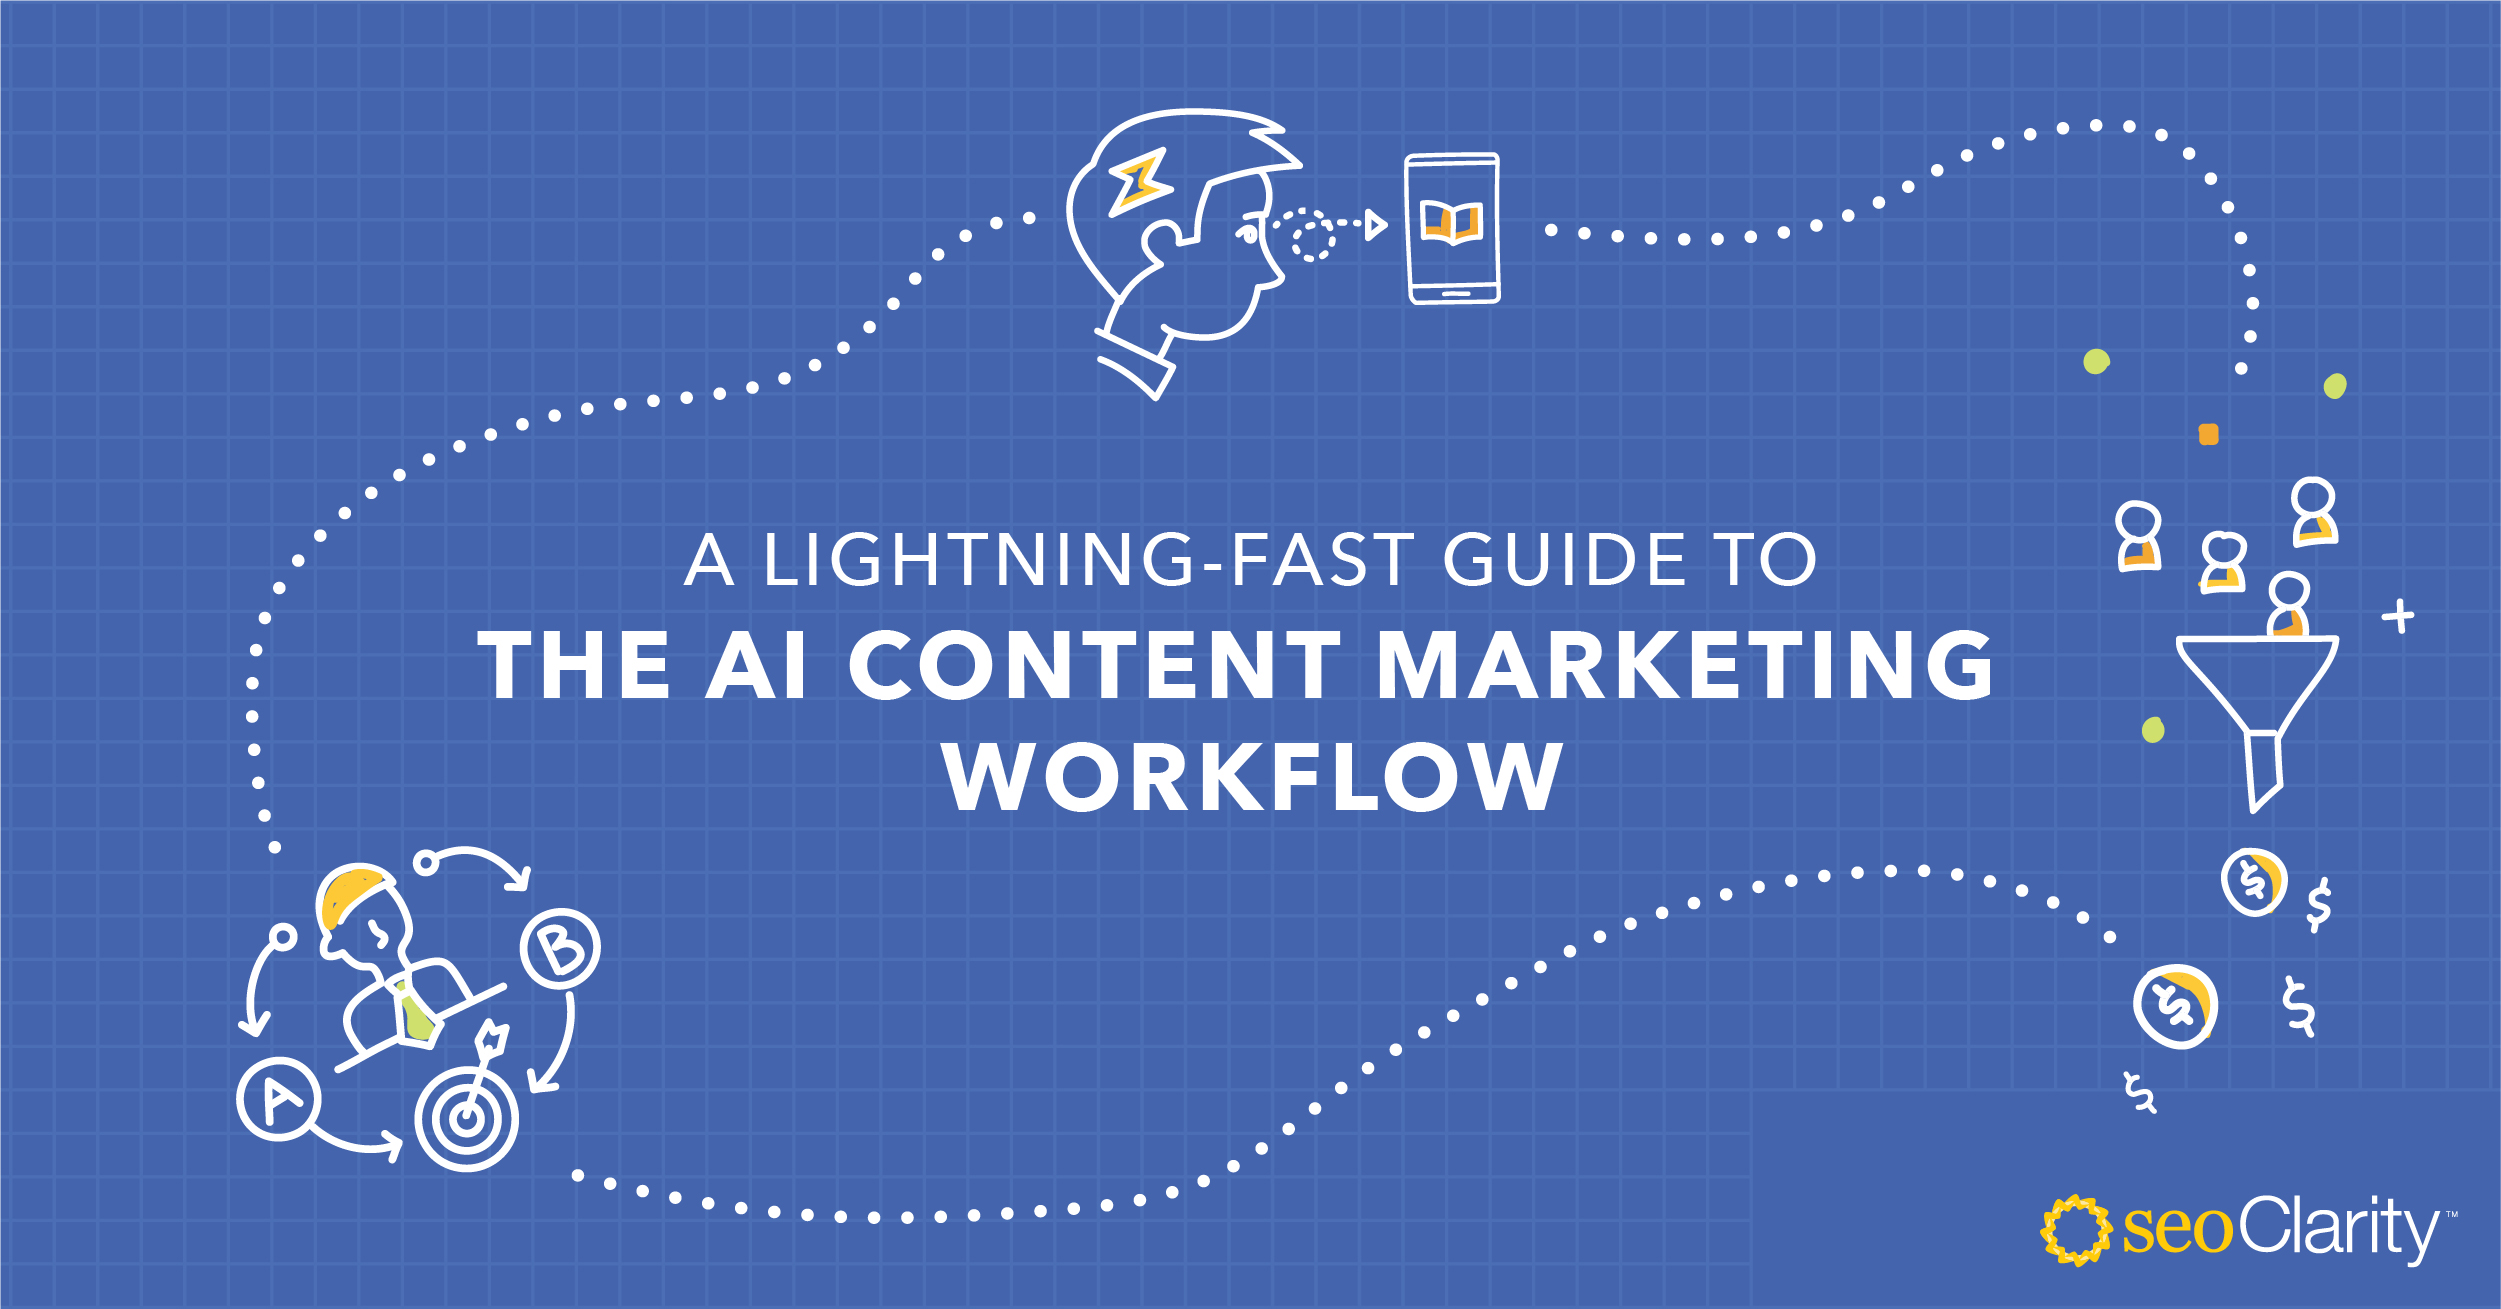 A Lightning-Fast Guide to the AI Content Marketing Workflow